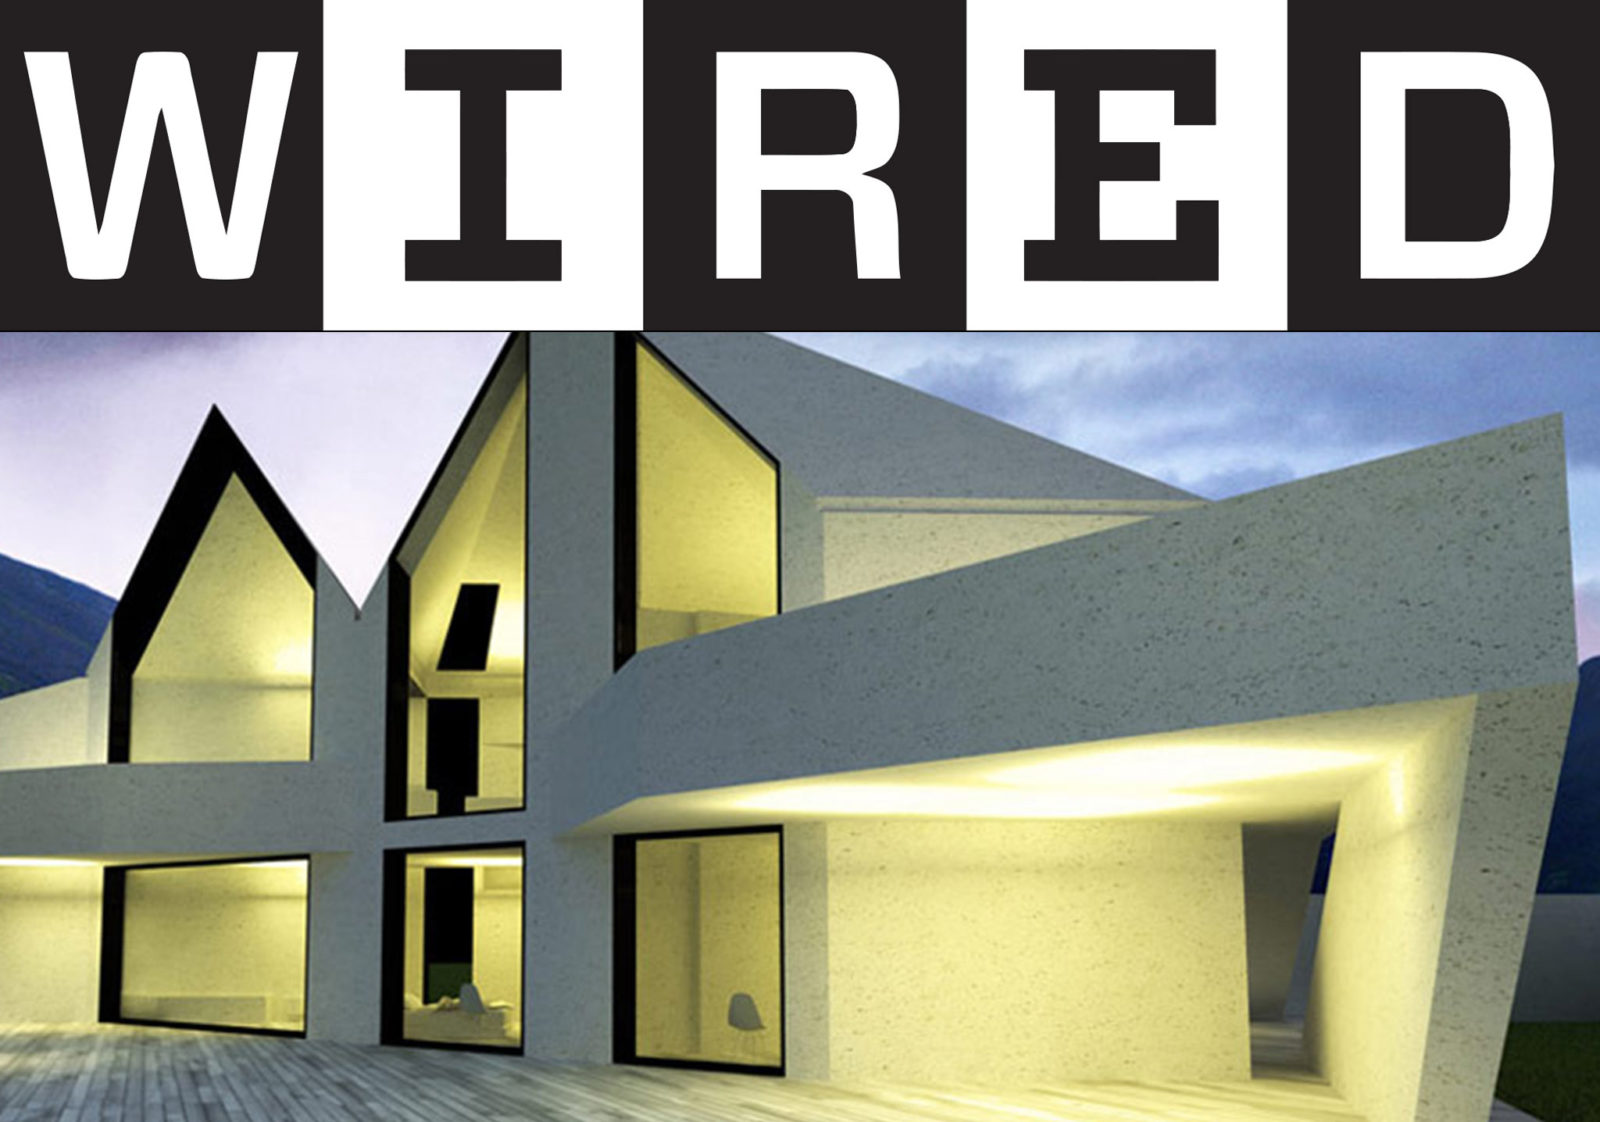 Wired Magazine JAPAN – The D*Haus Company